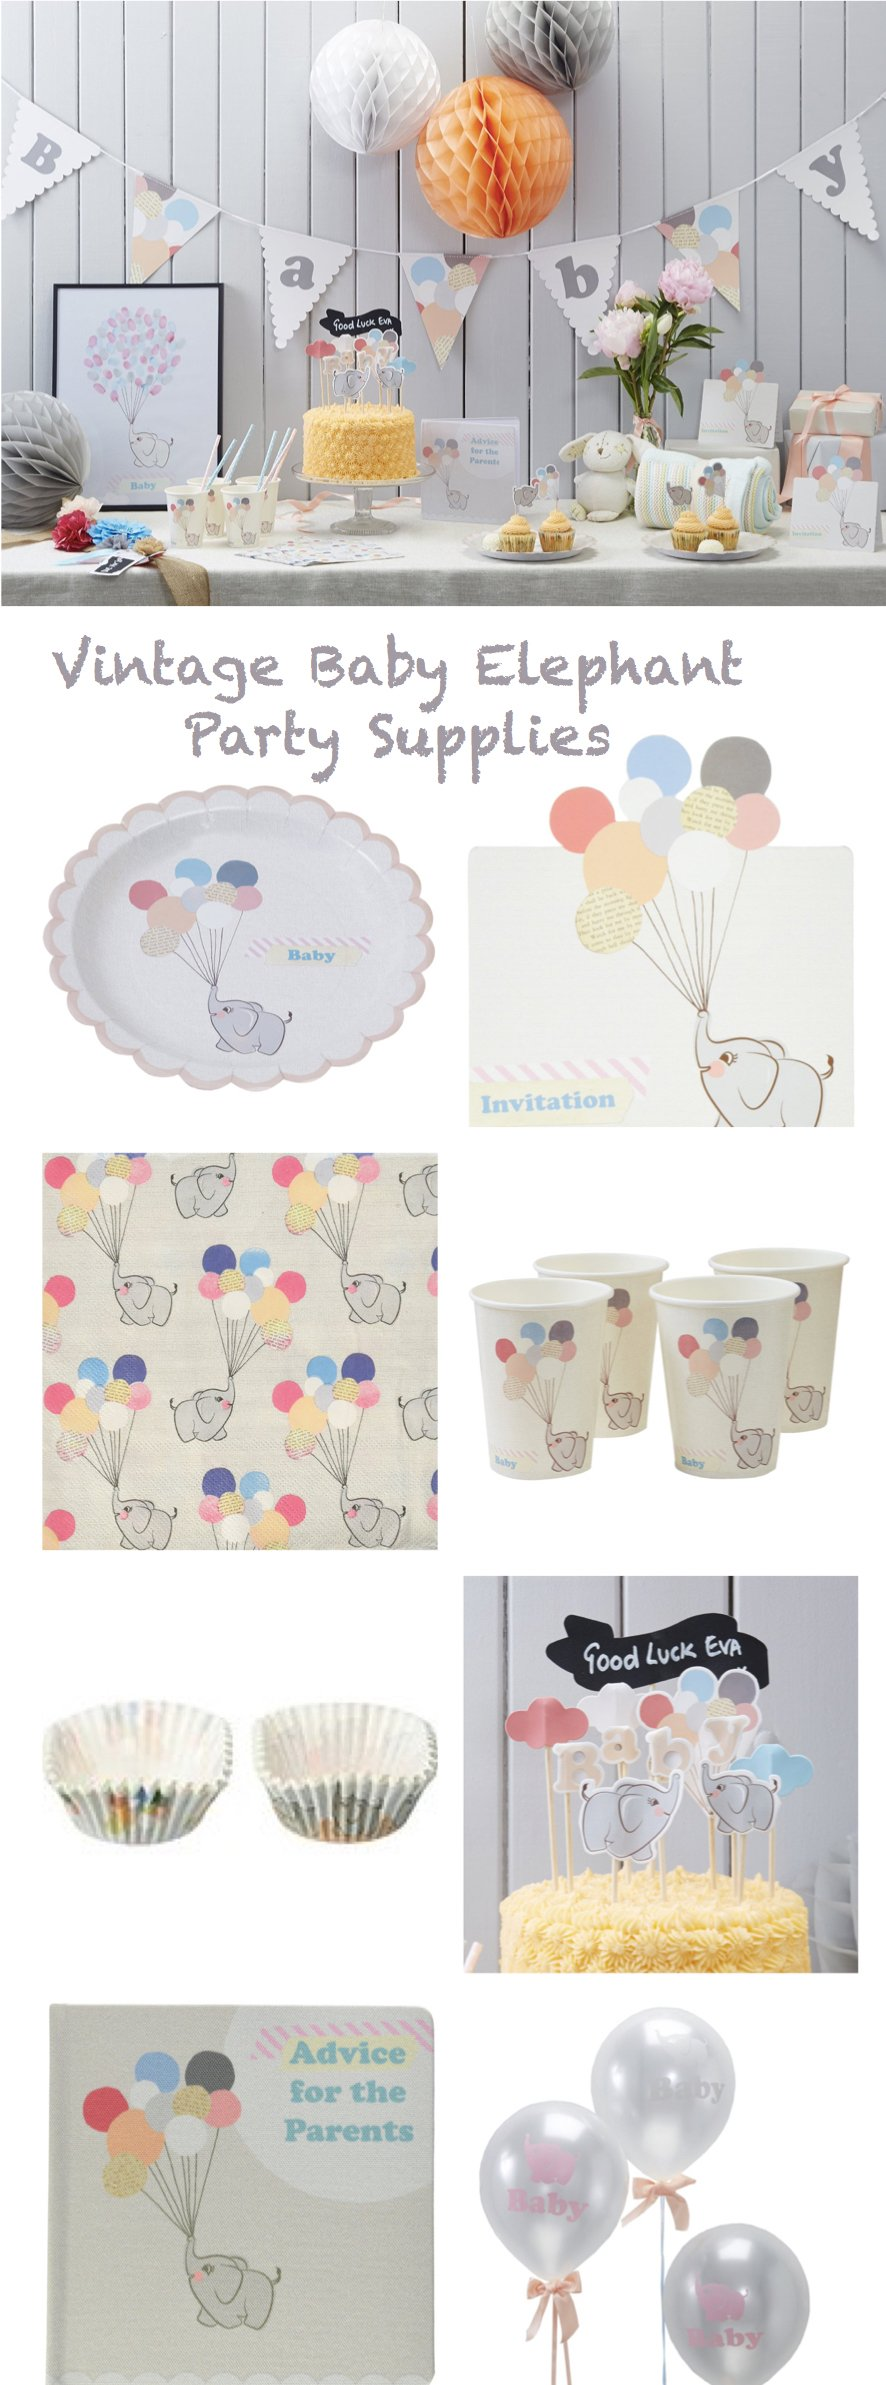 Vintage Baby Elephant Party Supplies